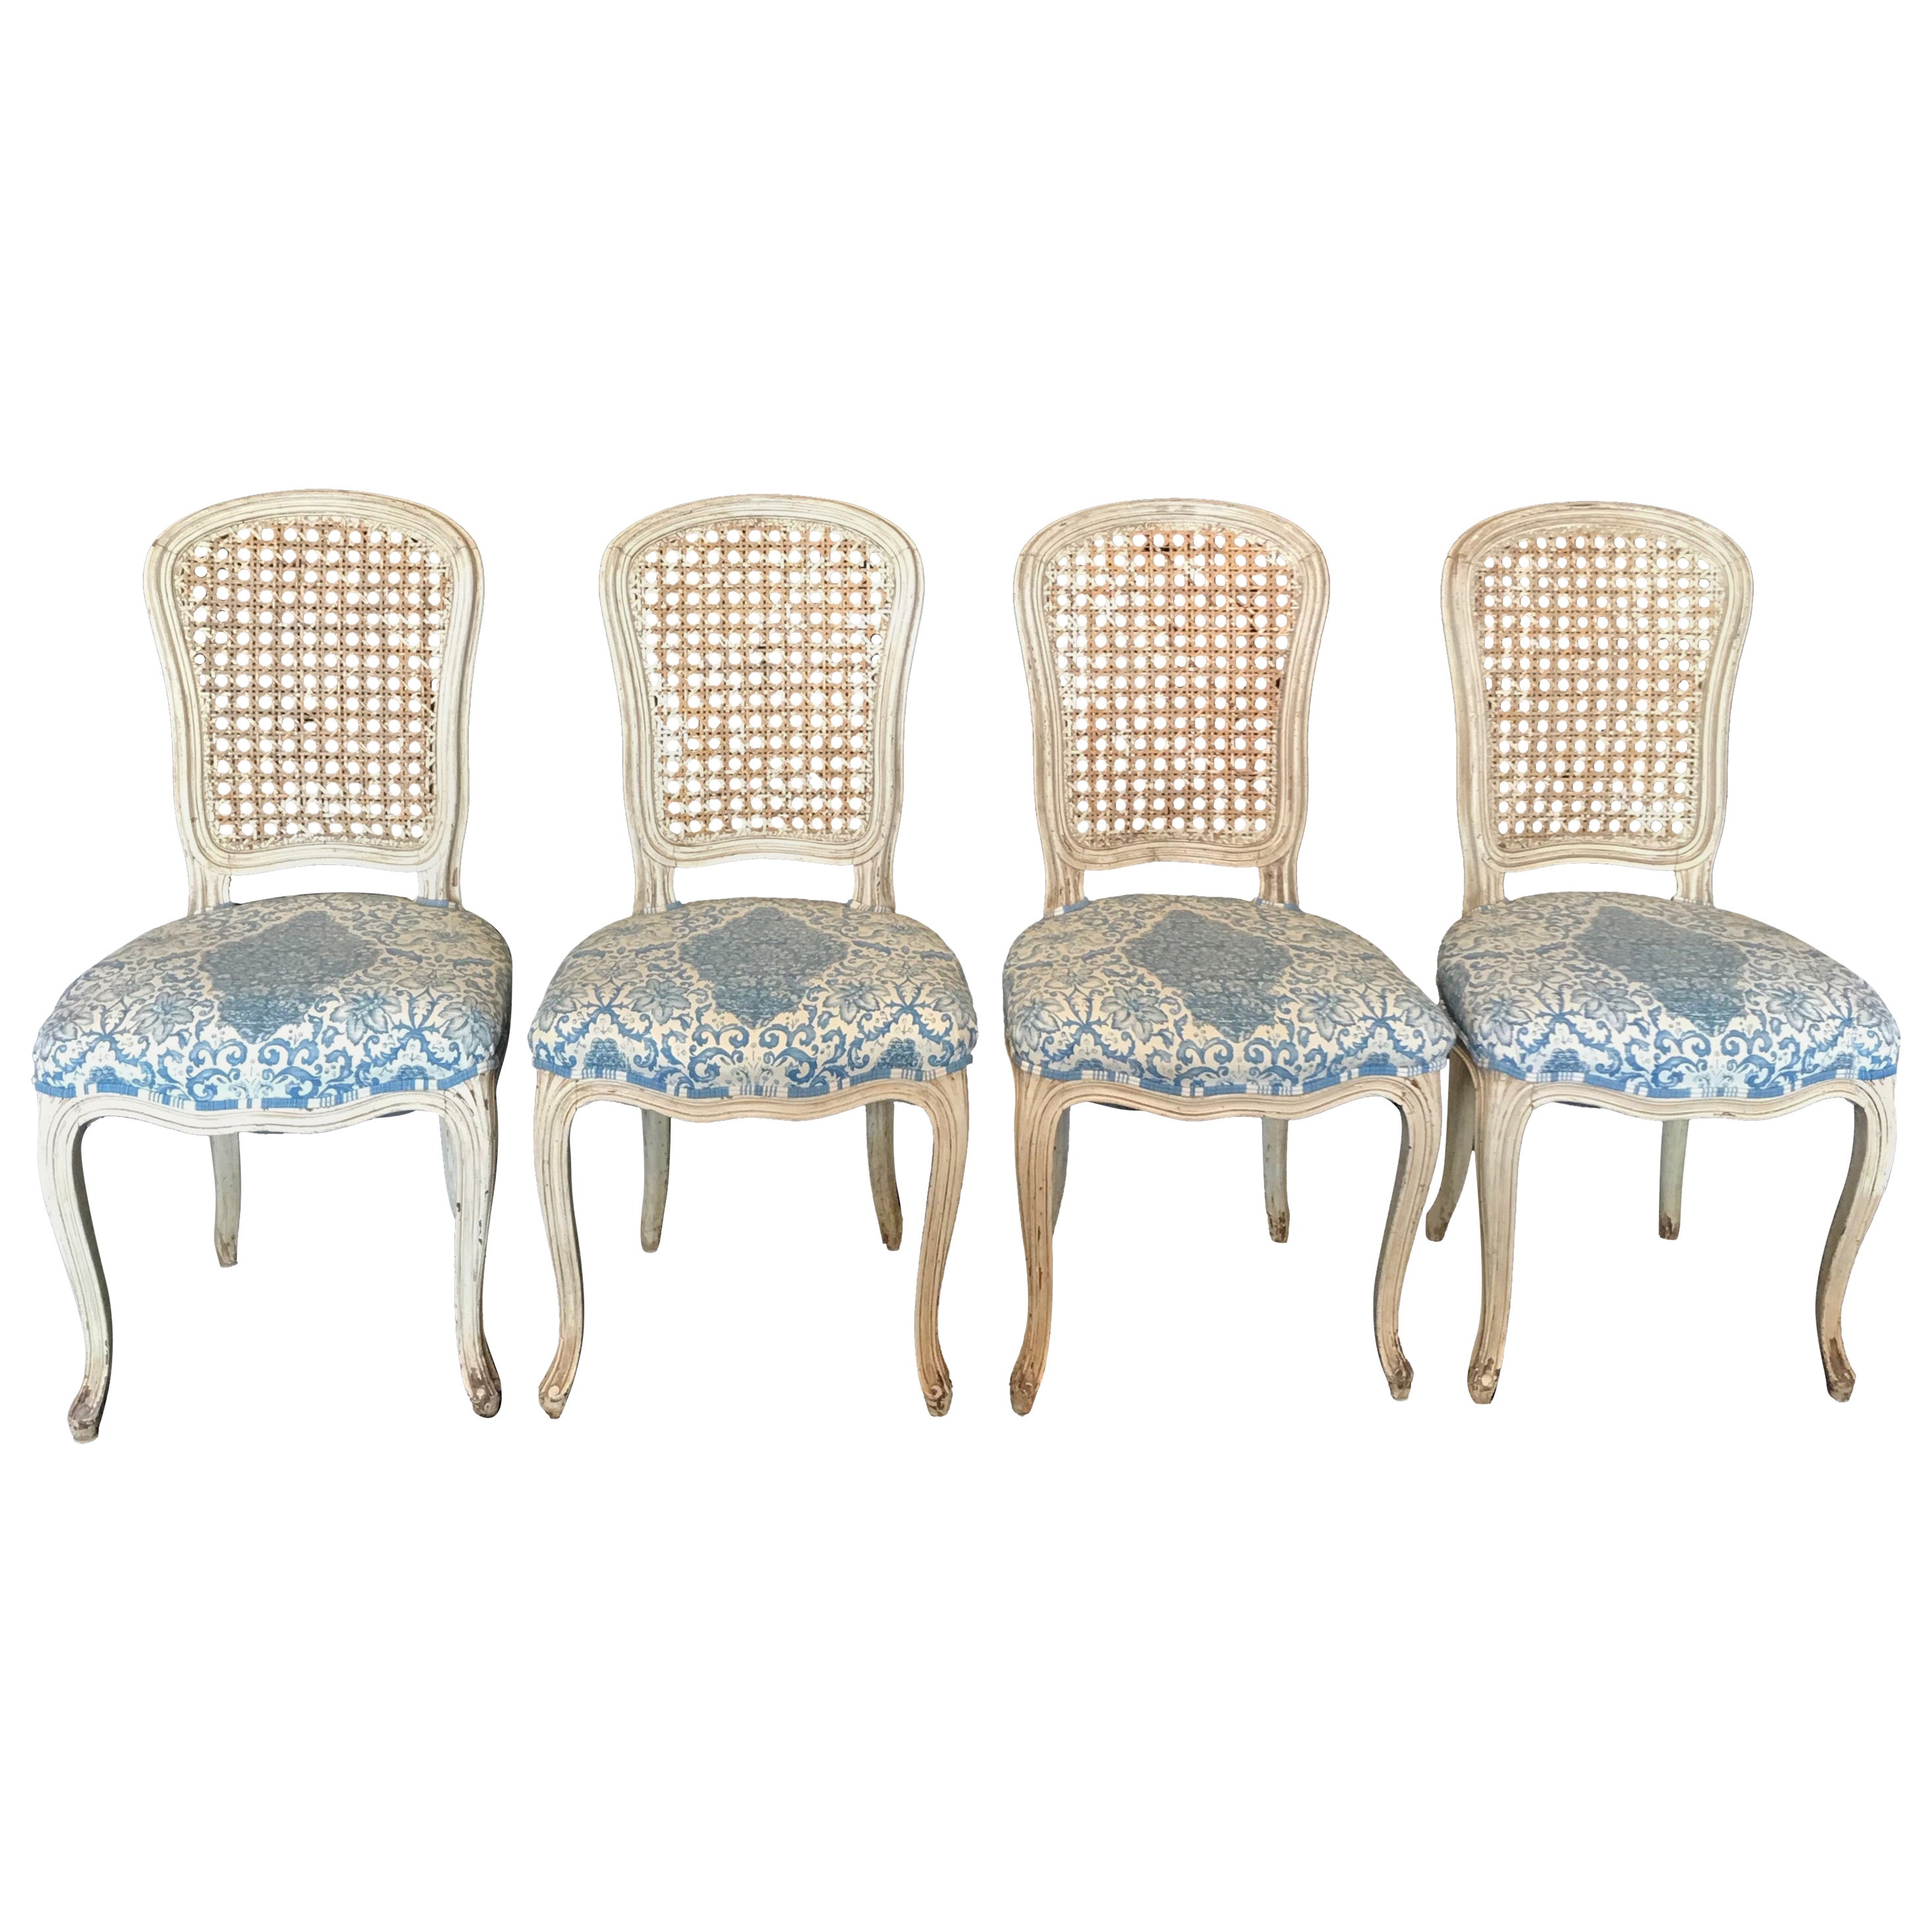 Set of 4 Very Pretty Italian Louis XV Painted Caned and Upholstered Side Chairs